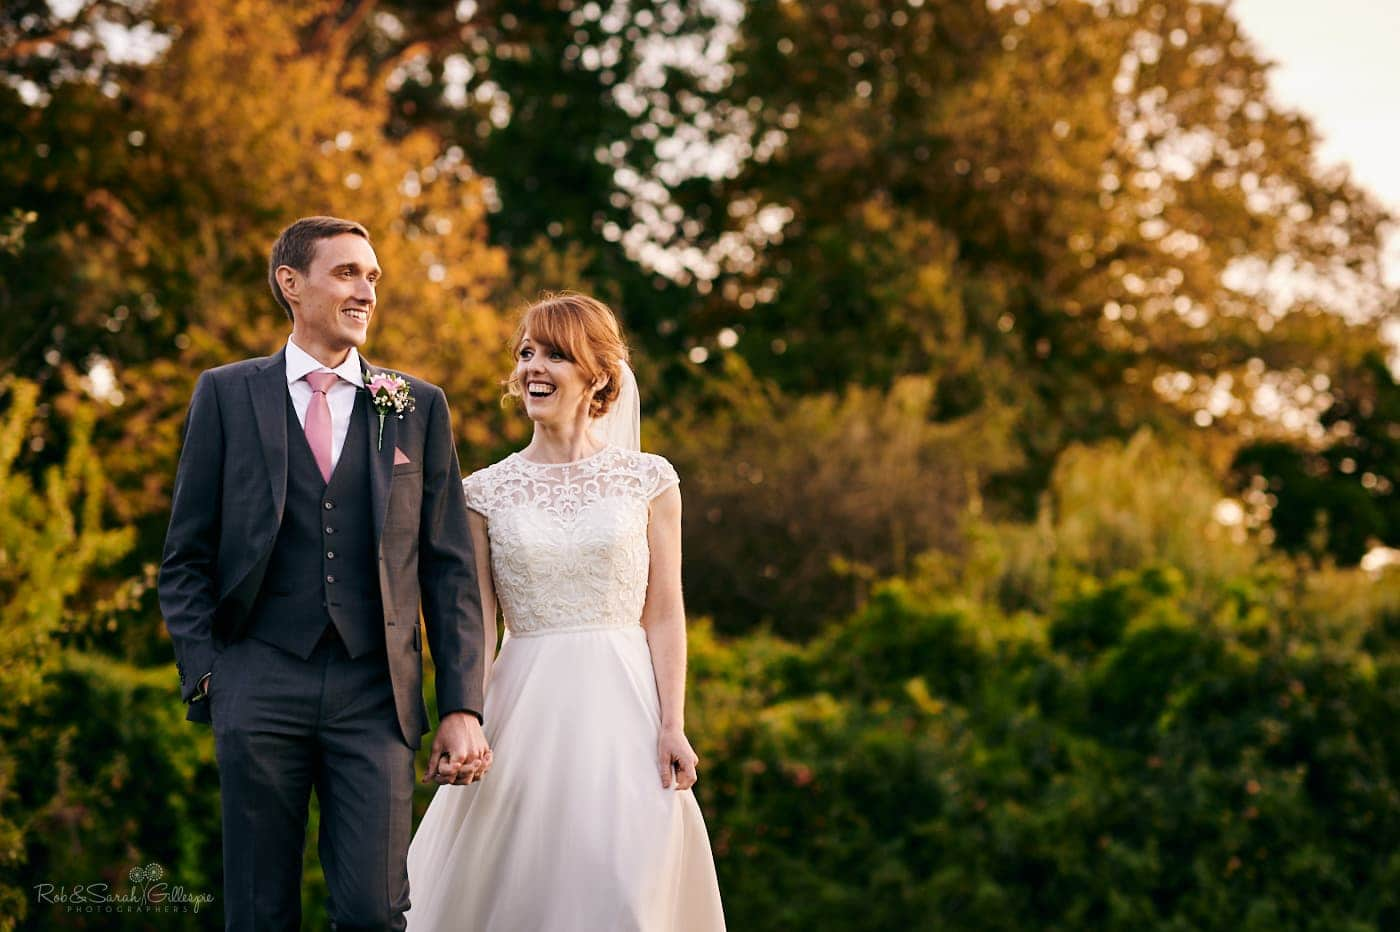 Newly married couple walk holding hands through Pendrell Hall gardens